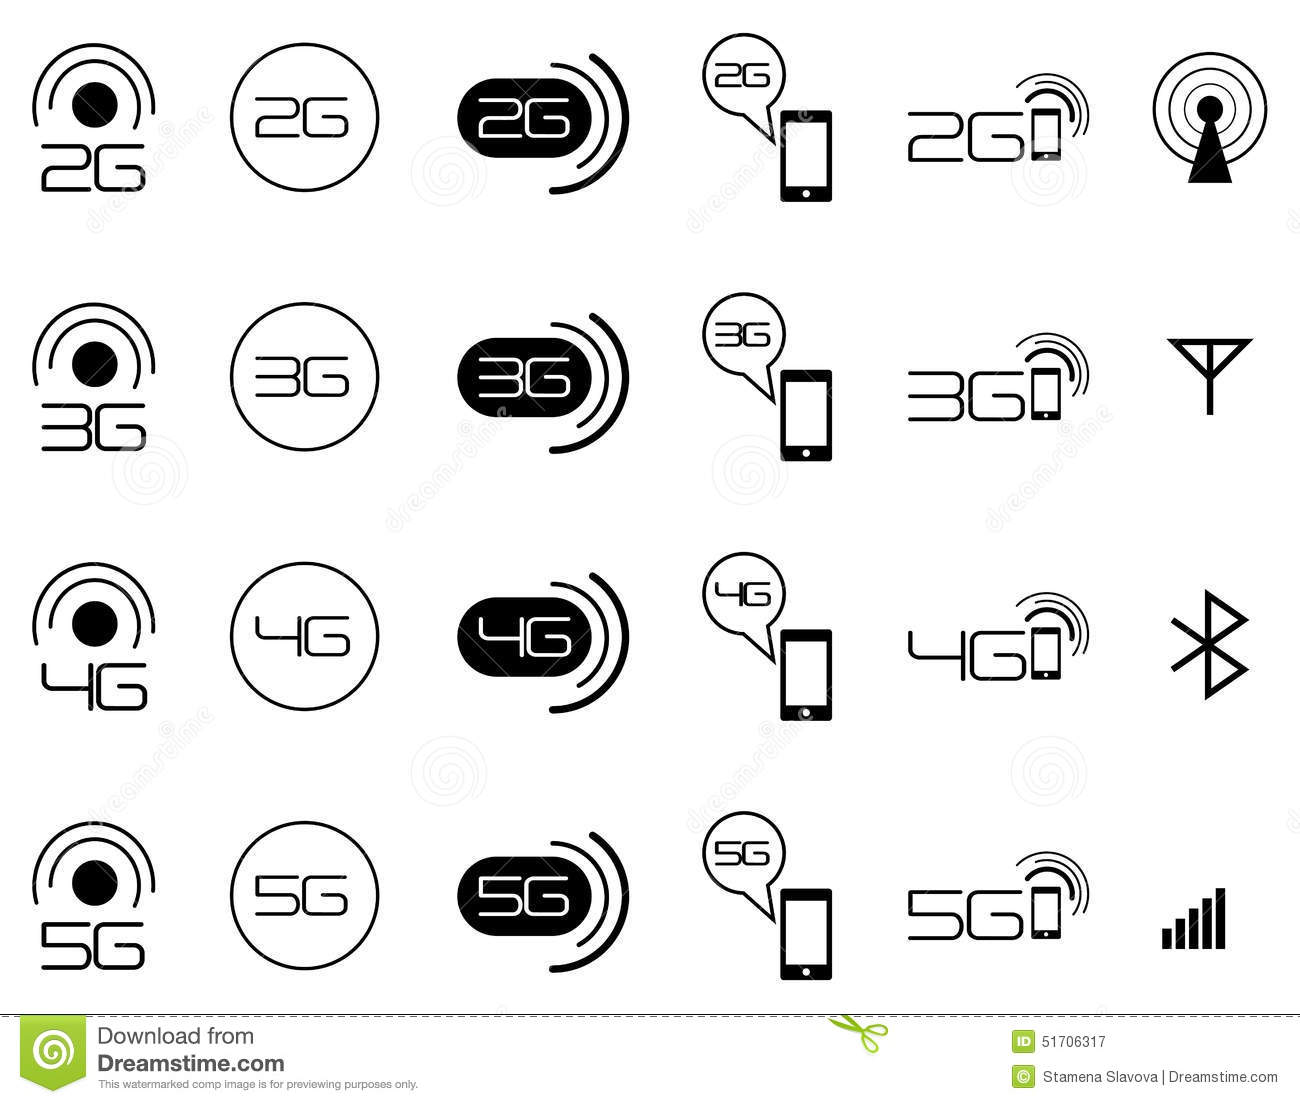 2G 3G 4G Mobile Network Icons Stock Vector - Illustration of